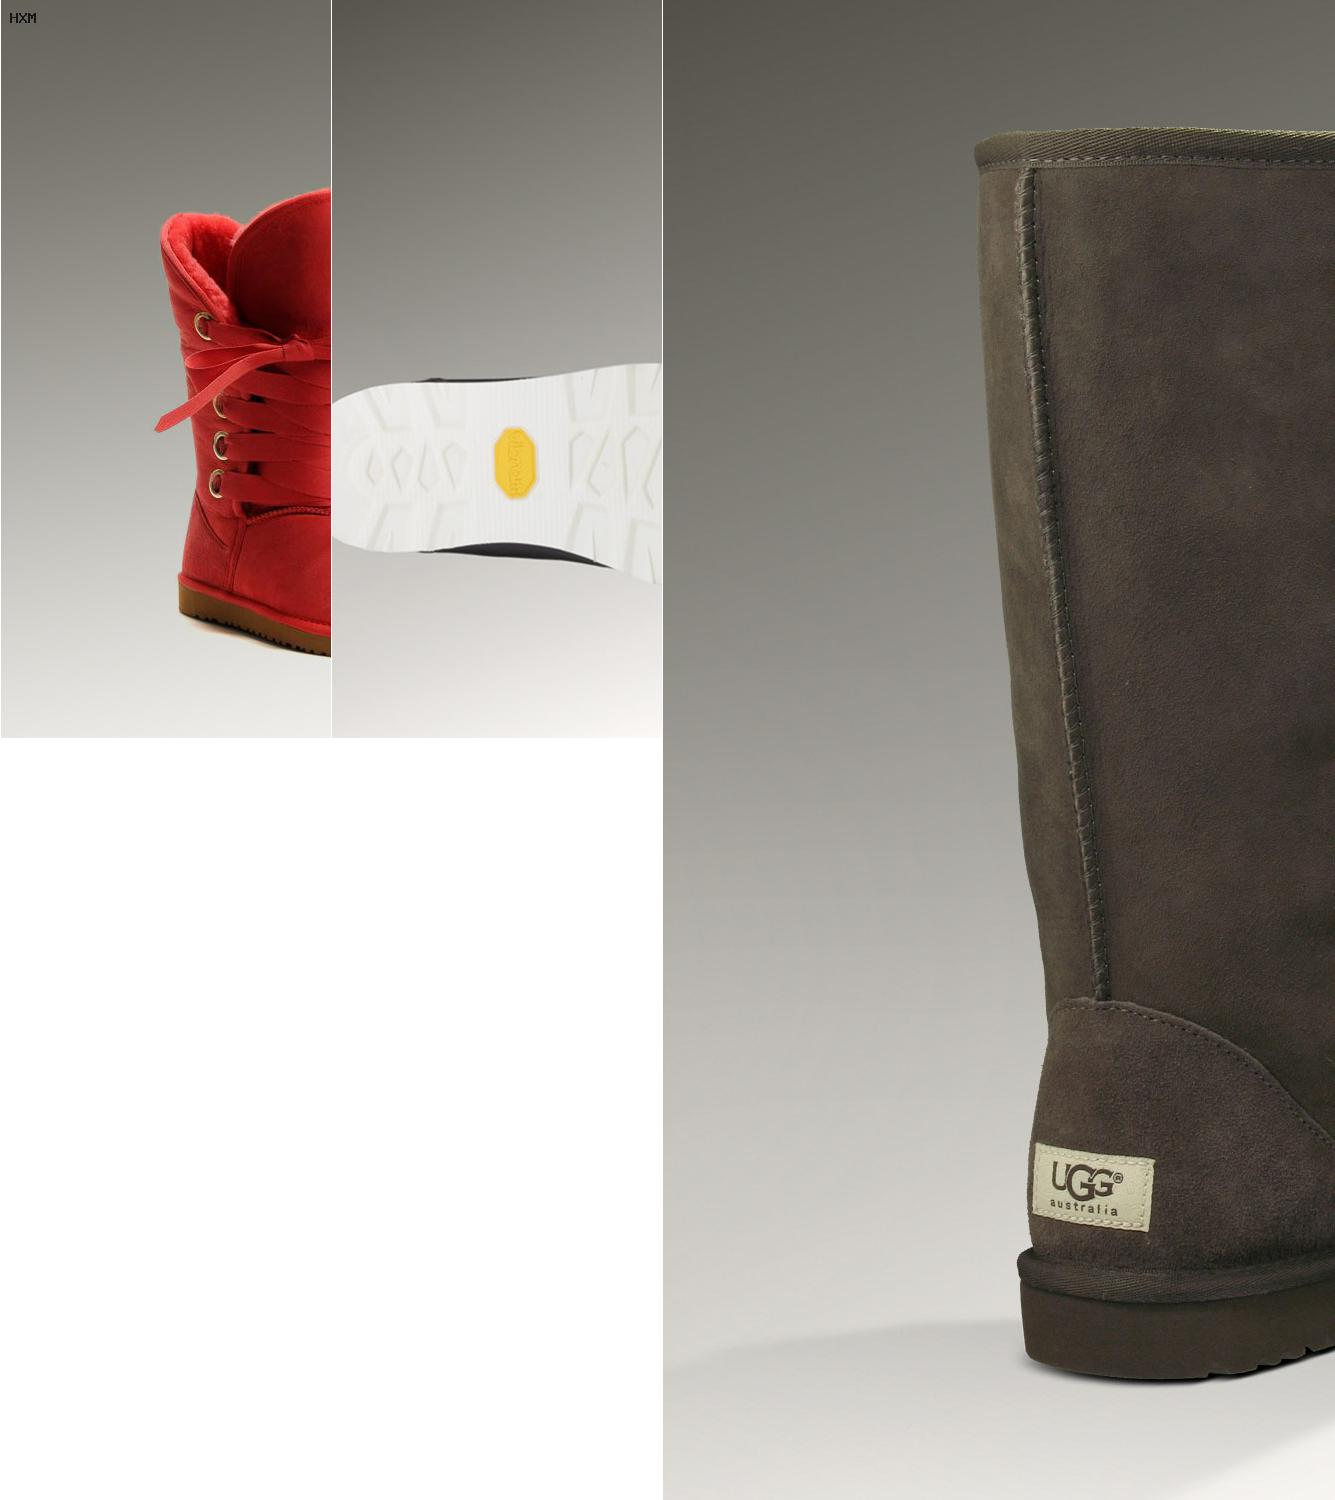 ugg australia acquisto on line